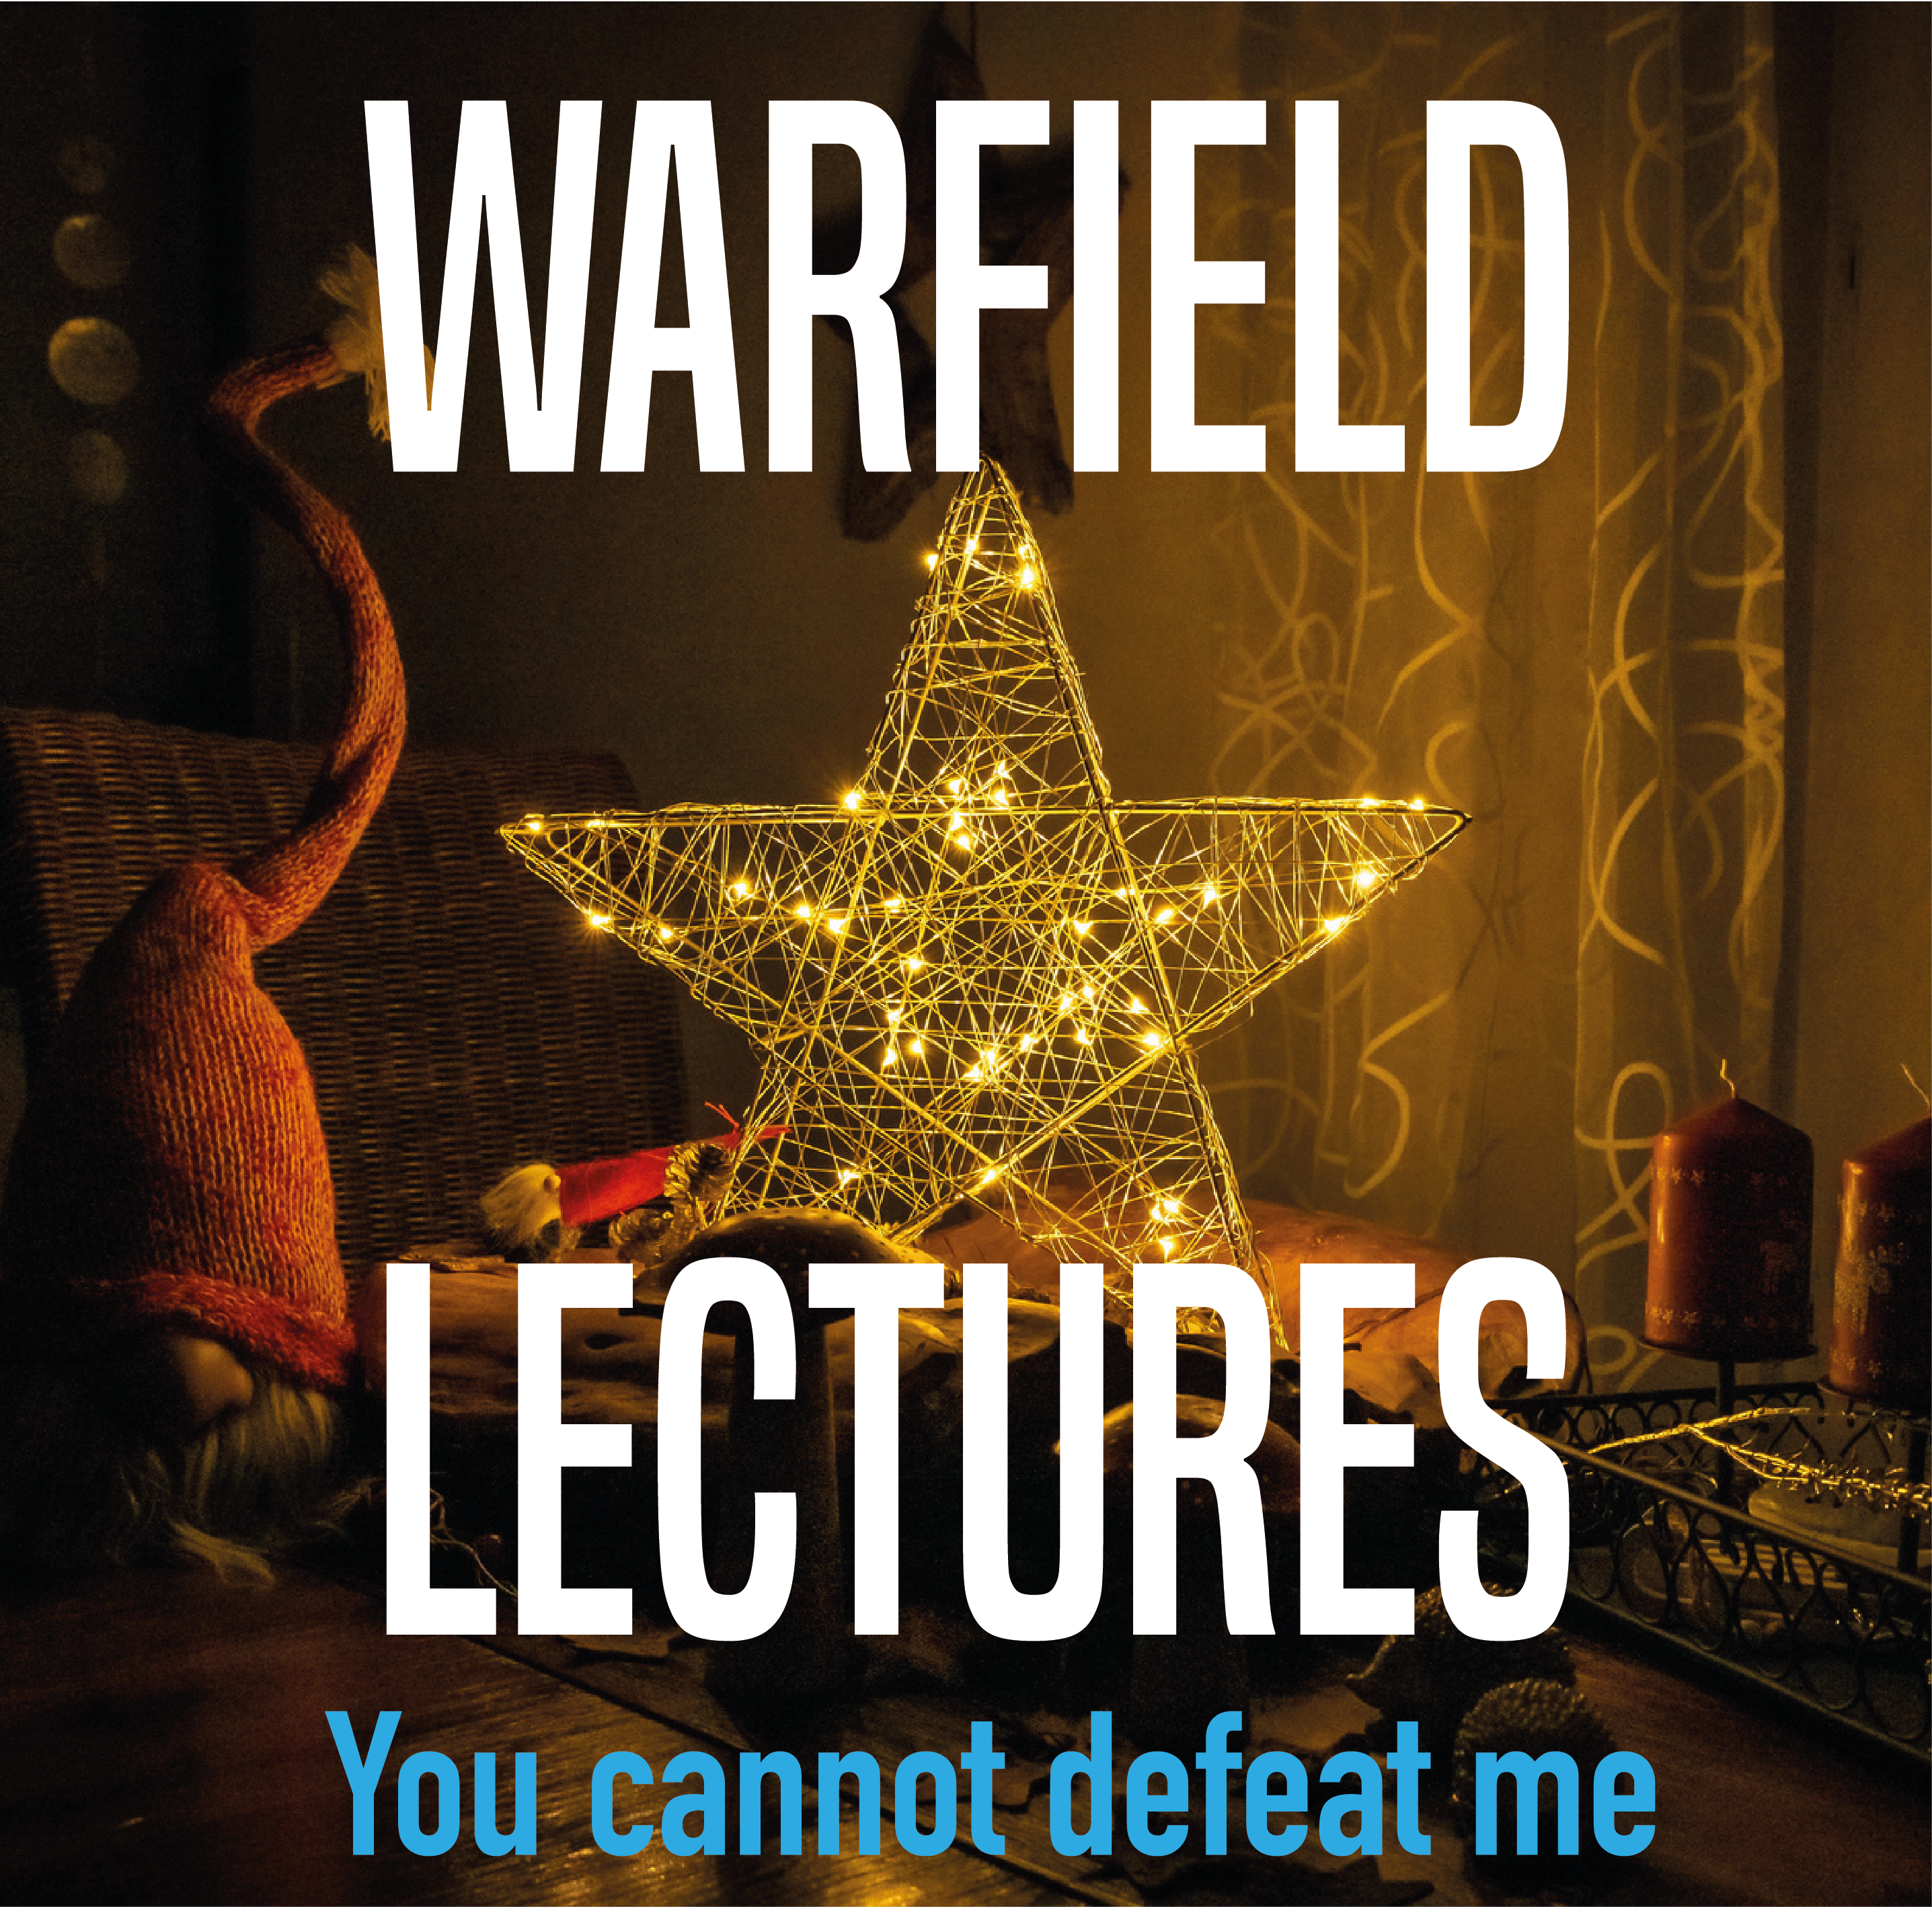 Waterfield_Lecture_0.png